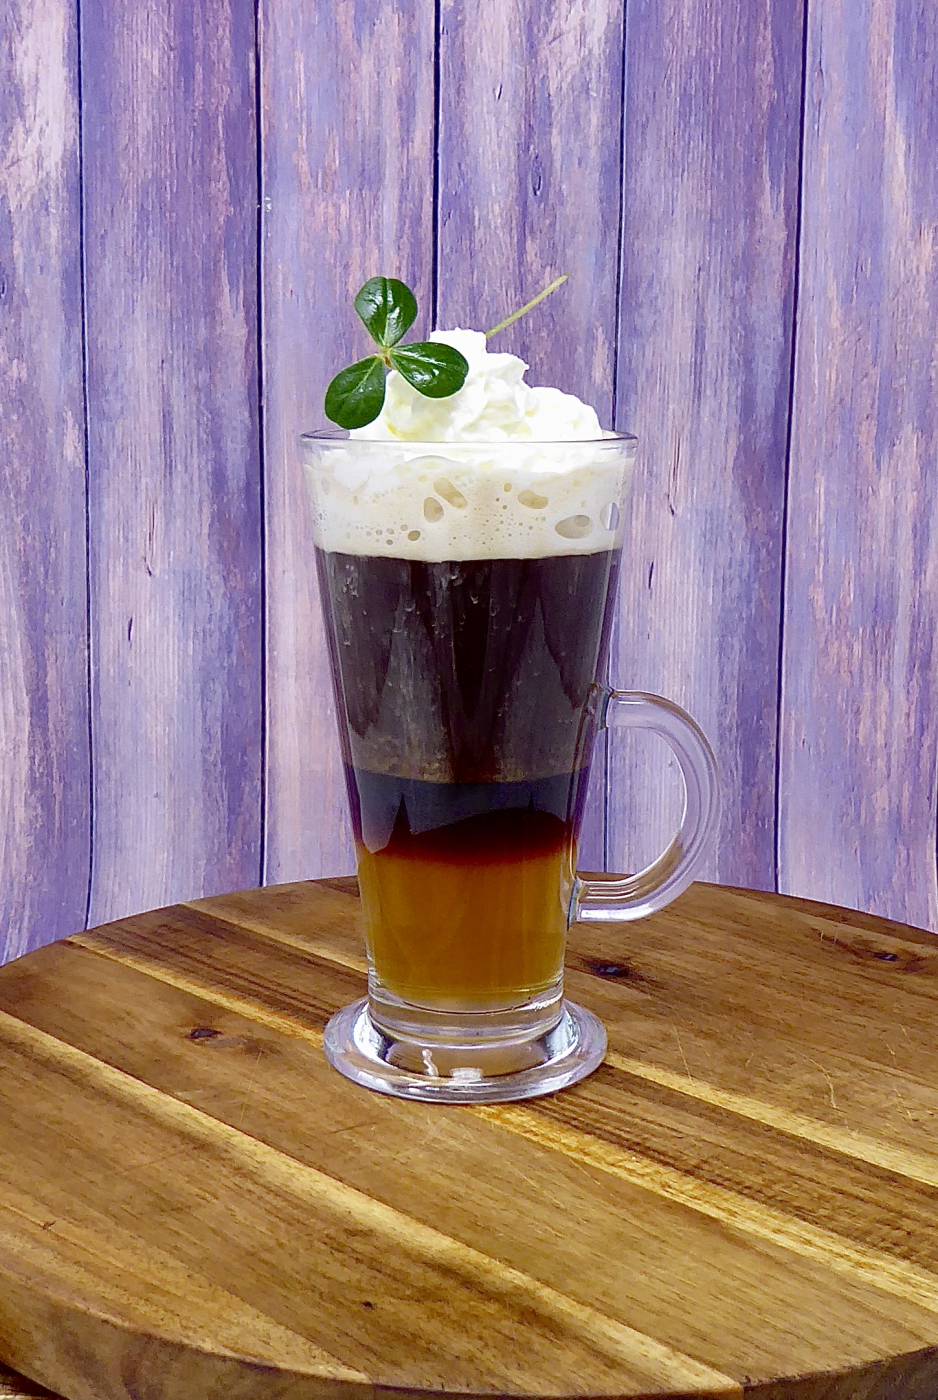 Irish coffee with citra leaves